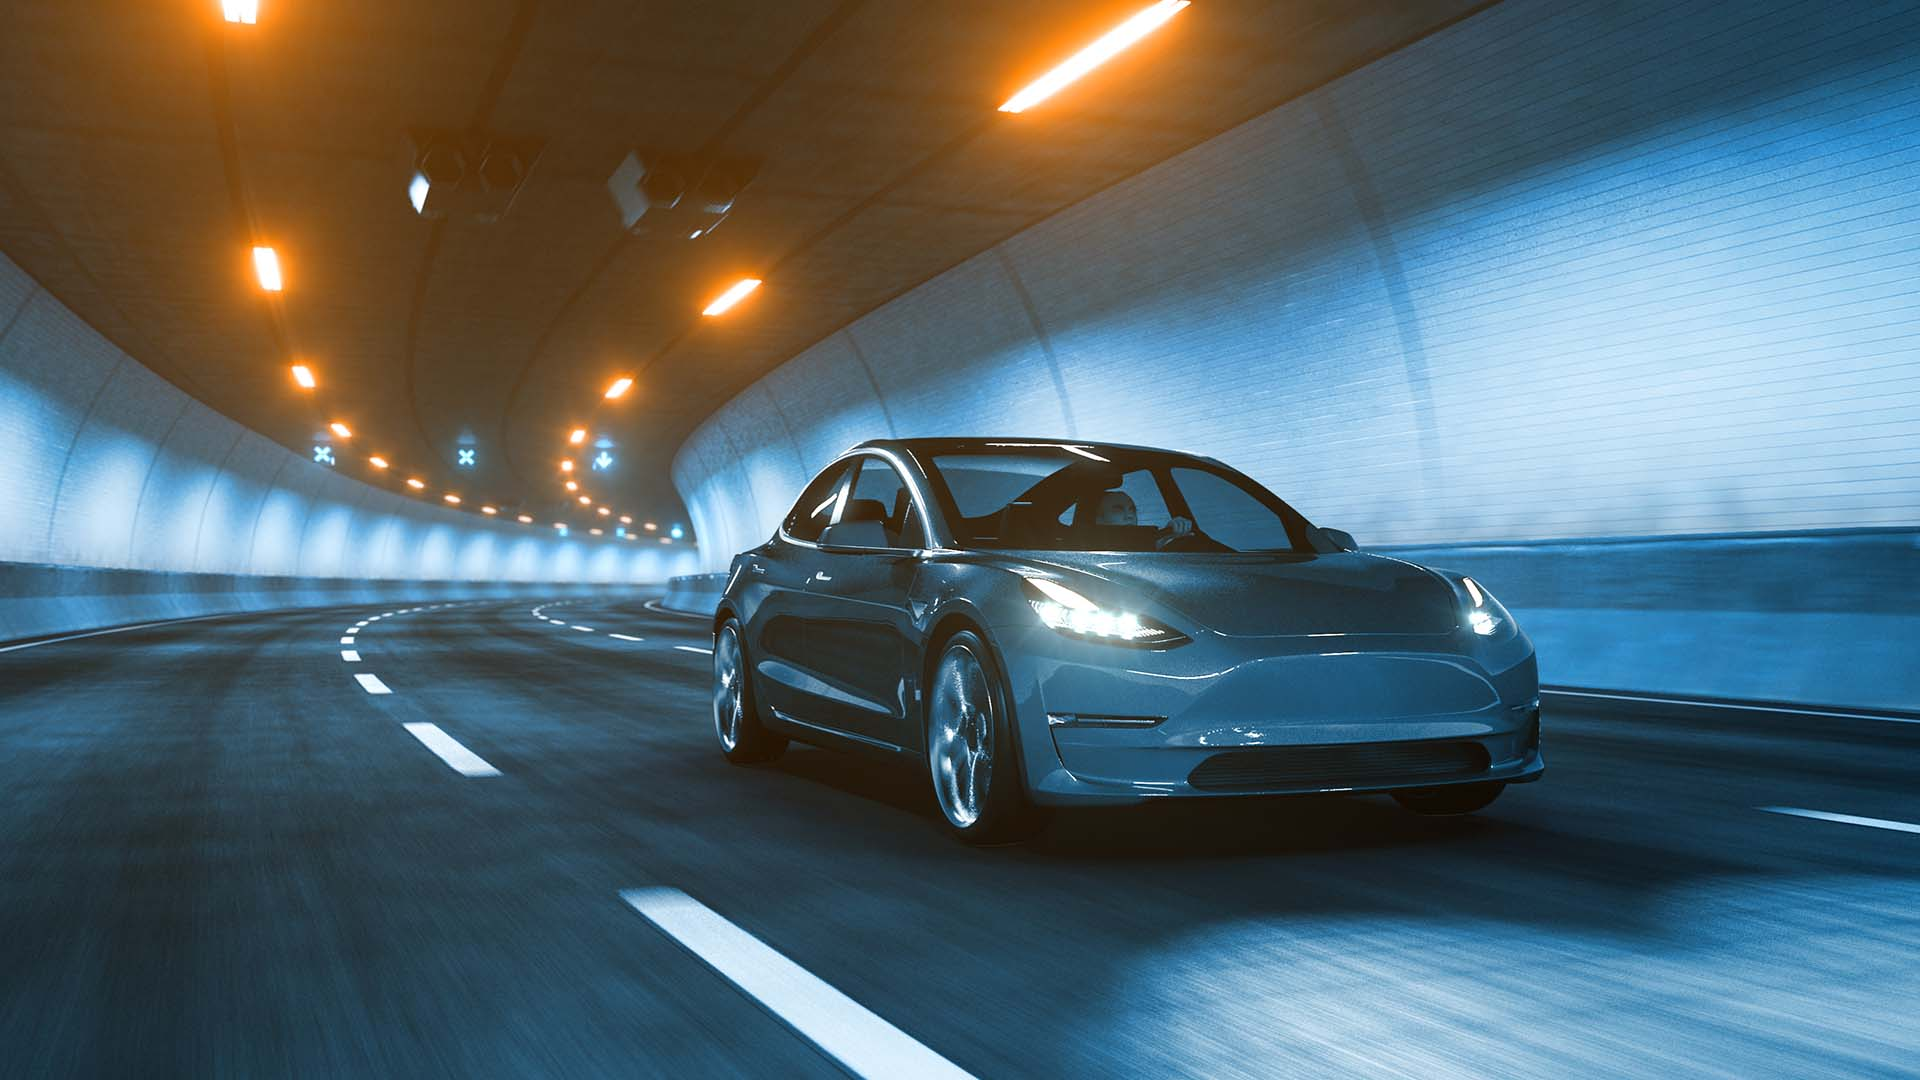 Tesla Model 3 in a tunnel